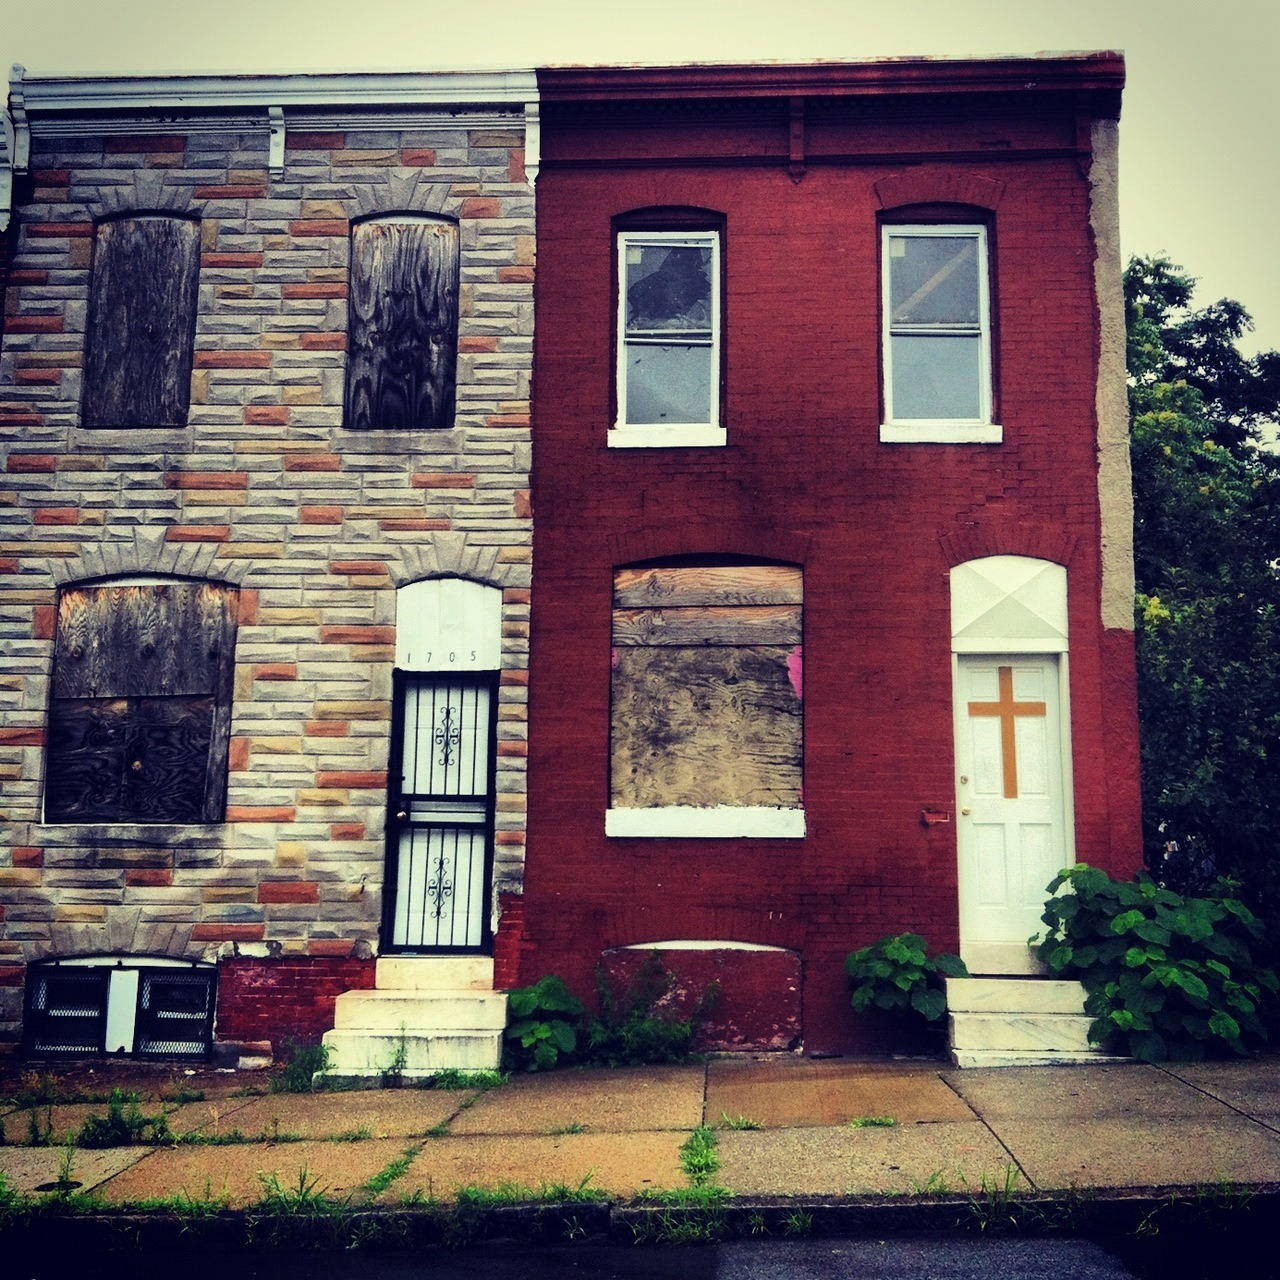 N. Montford Ave, 1700 blk